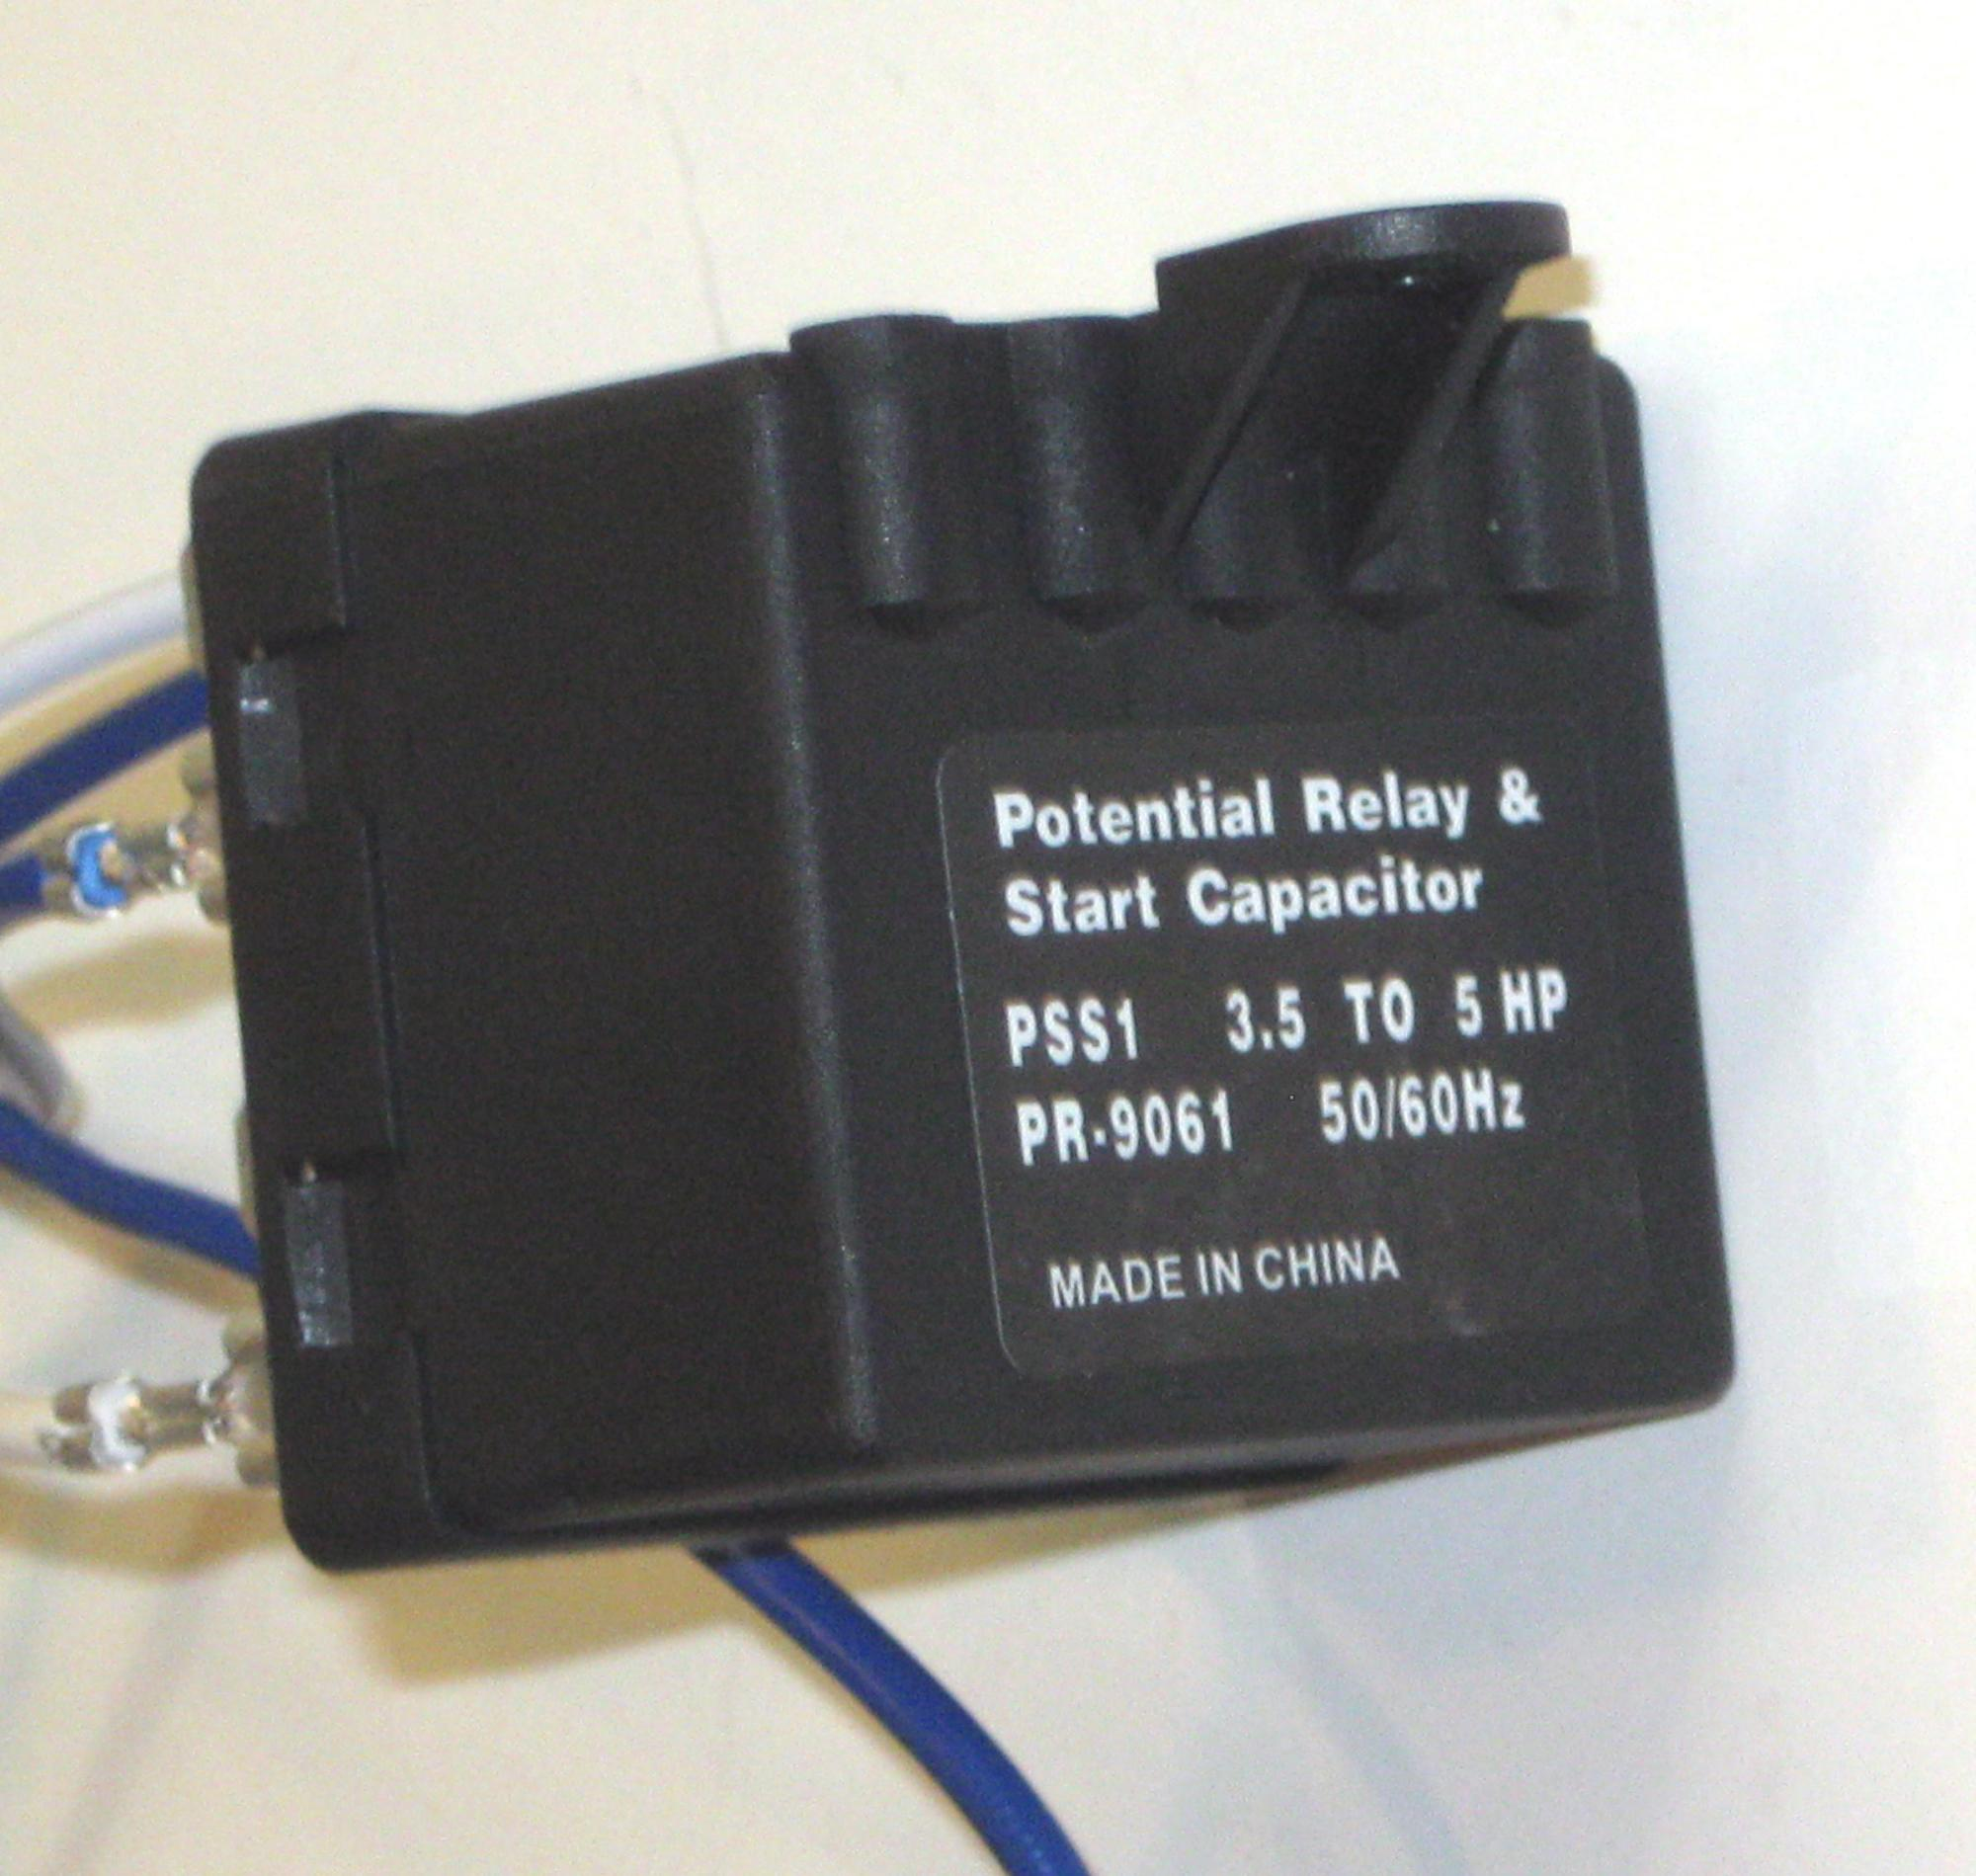 hight resolution of hvac air conditioning super torque kick start potential relay capacitor pss1 walmart com